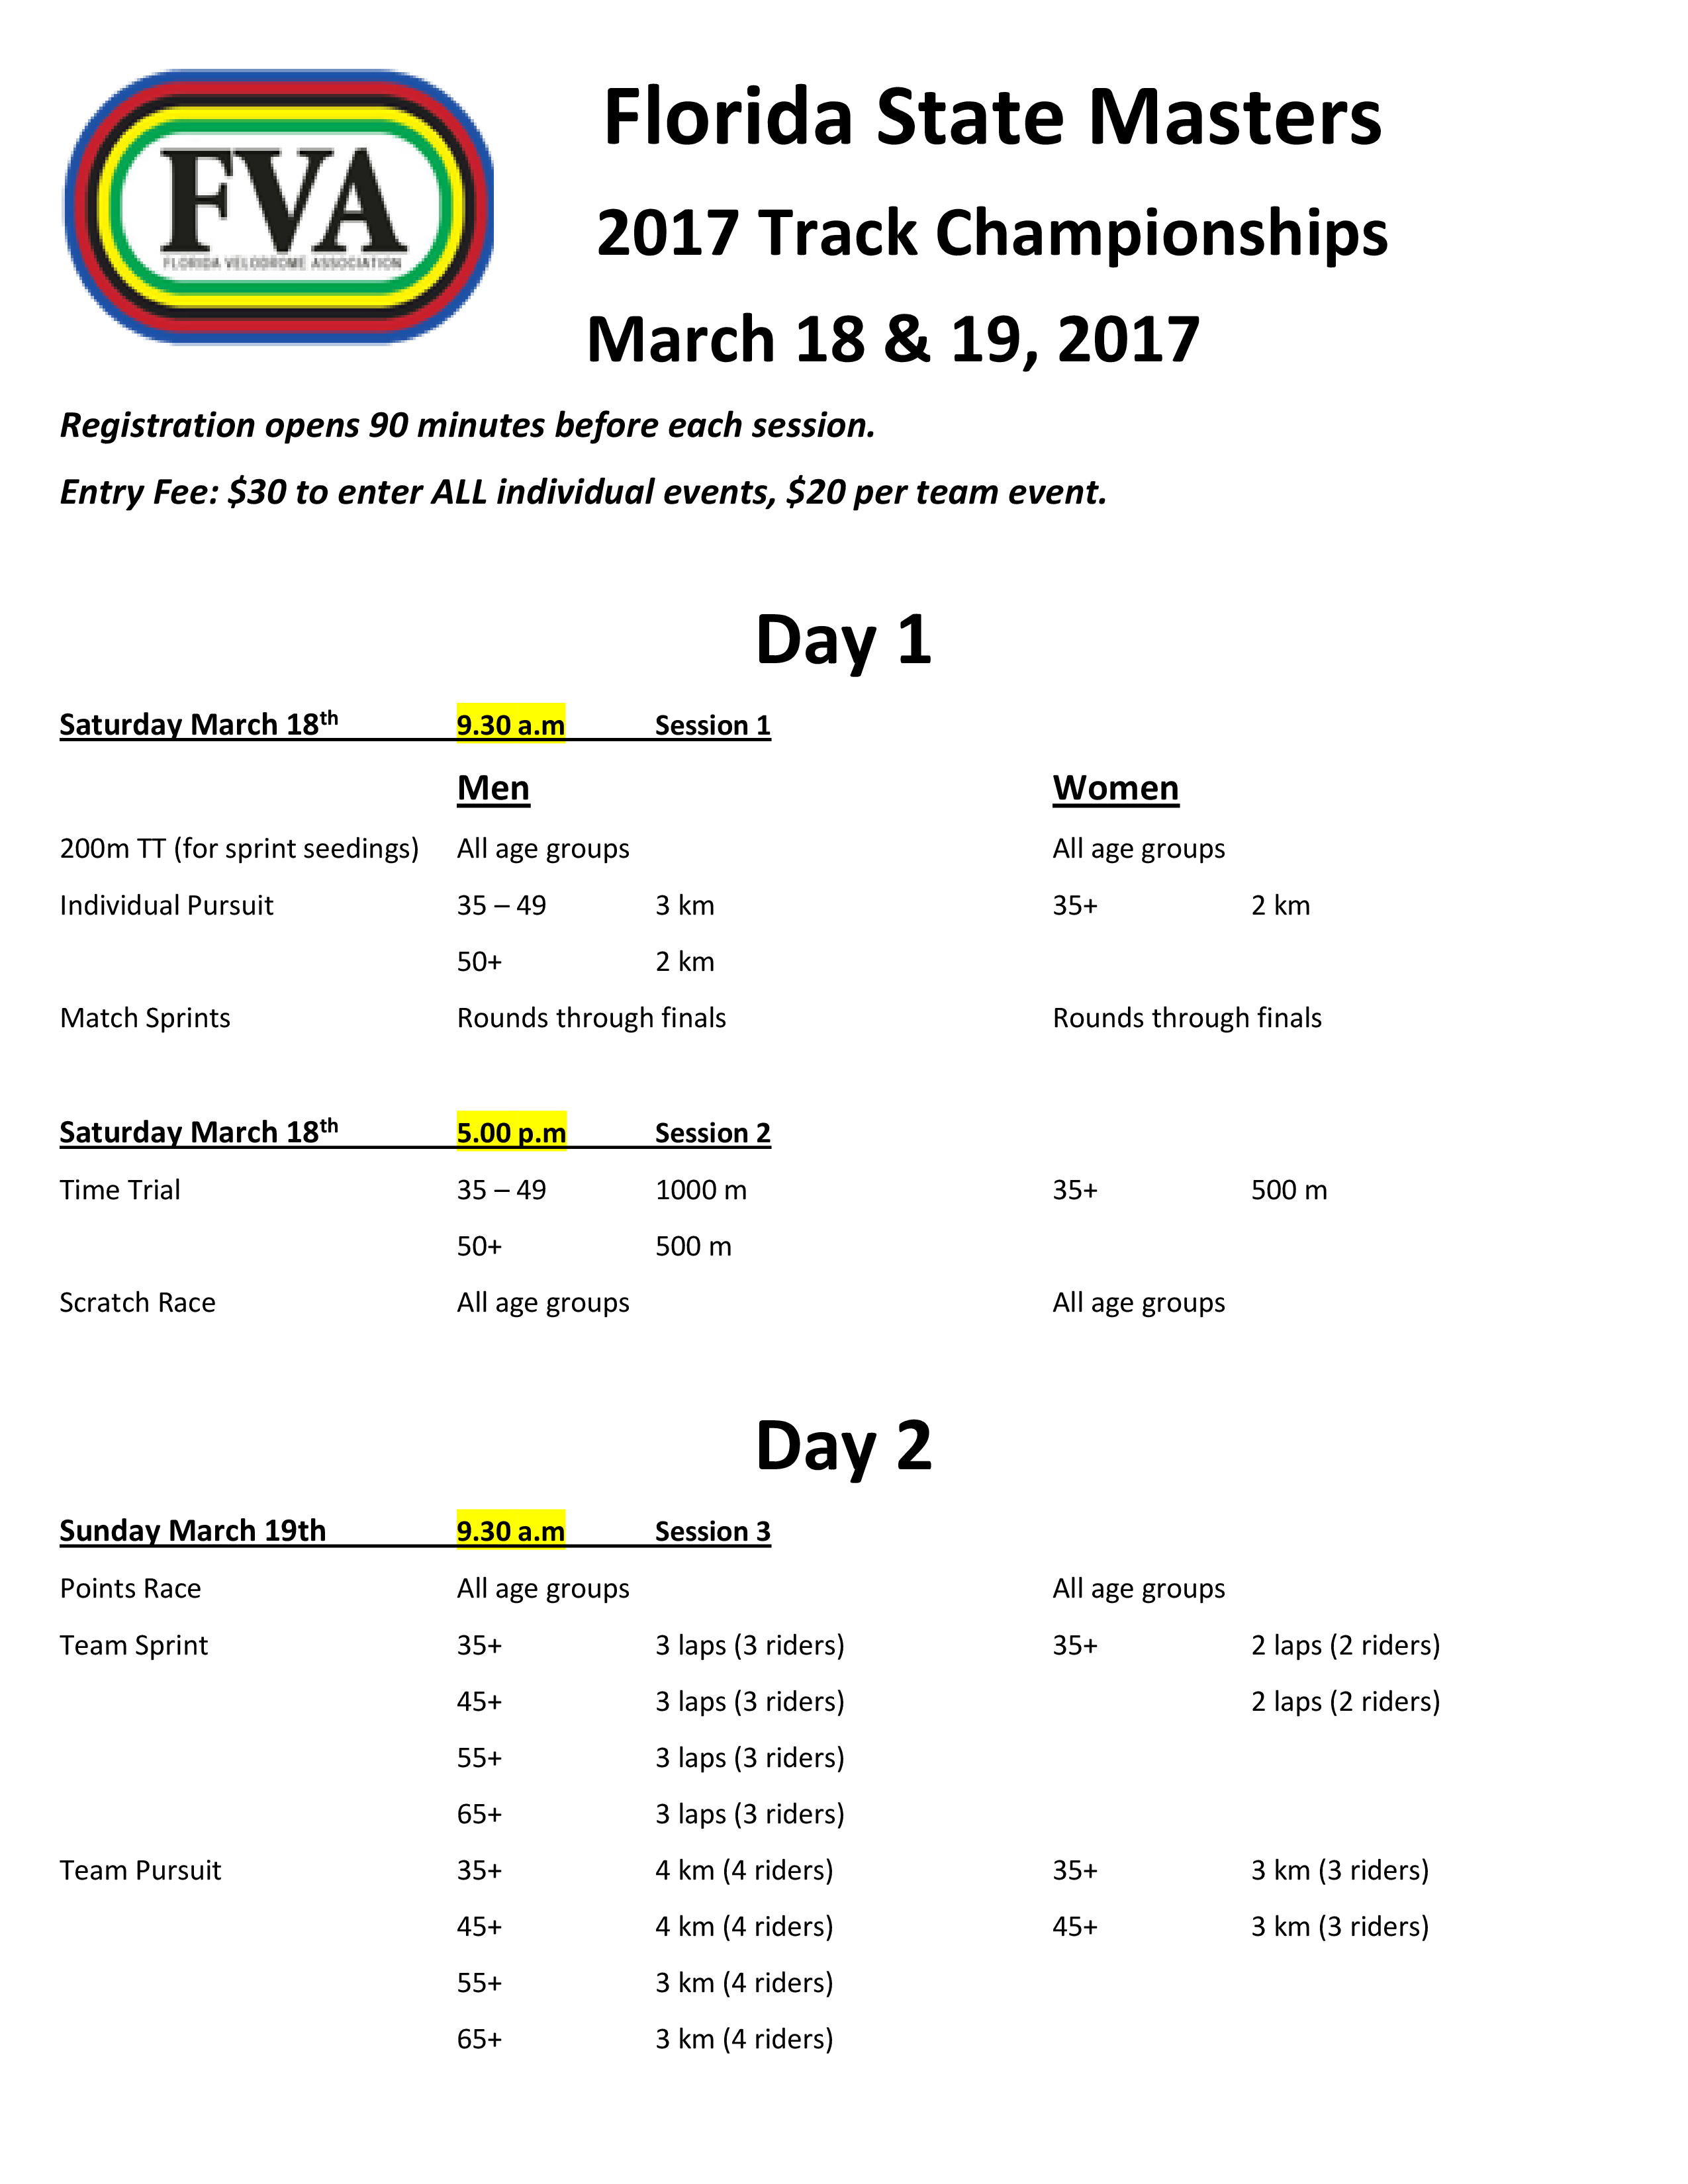 Florida State Masters 2017 details